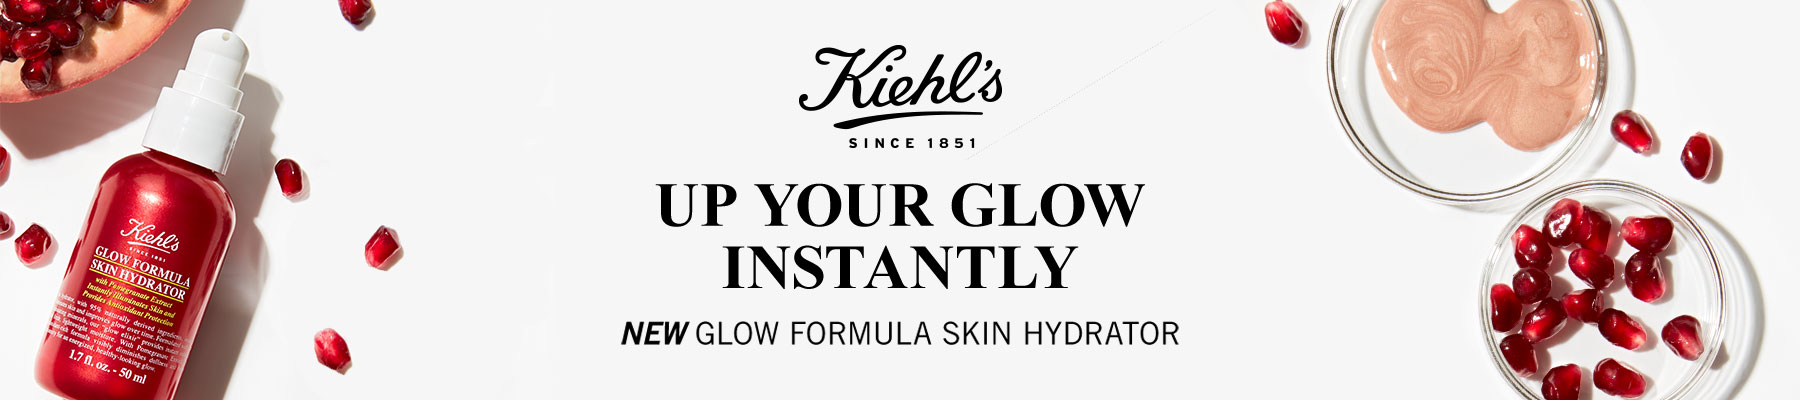 Kiehl's Since 1851: Up your glow instantly - New glow formula skin hydrator